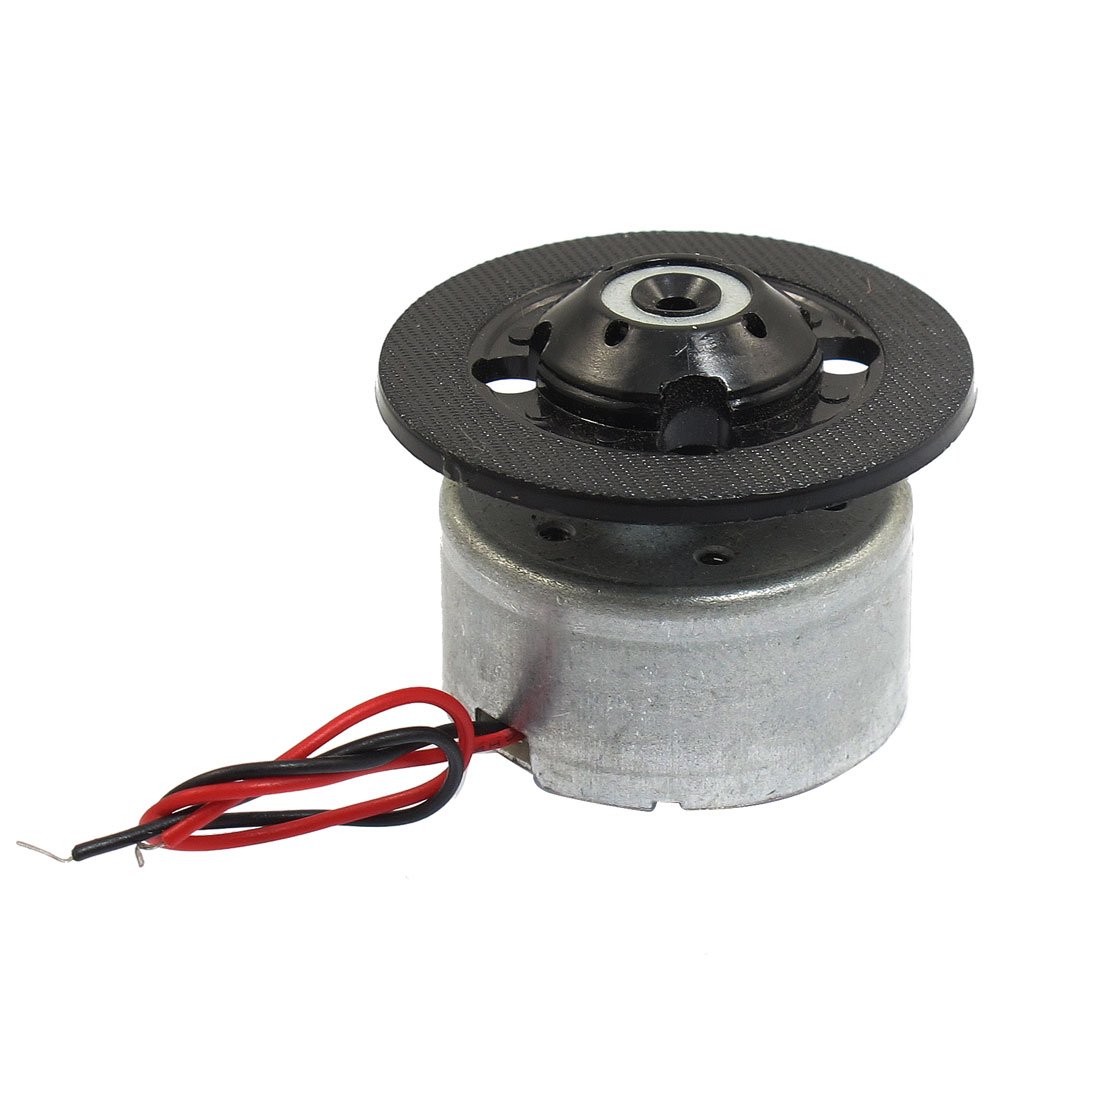 Replacement DVD Player RF-300F-12350 Spindle Motor DC 3V